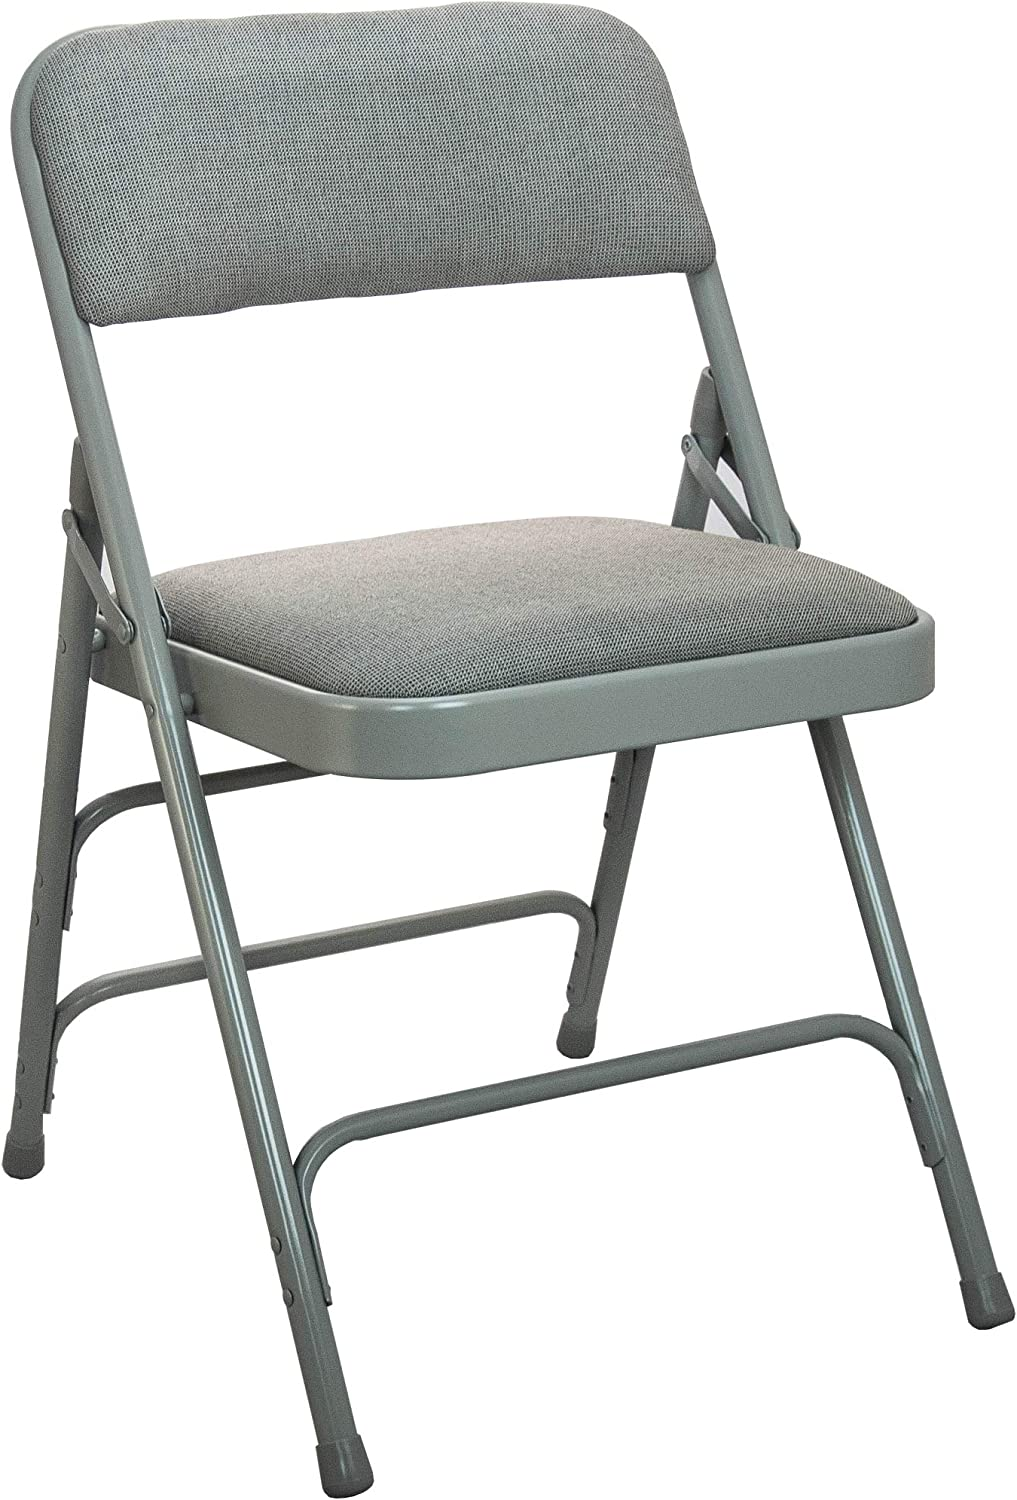 EMMA + OLIVER free shipping Grey Padded Metal Folding High quality Chair - 1-in Fabric